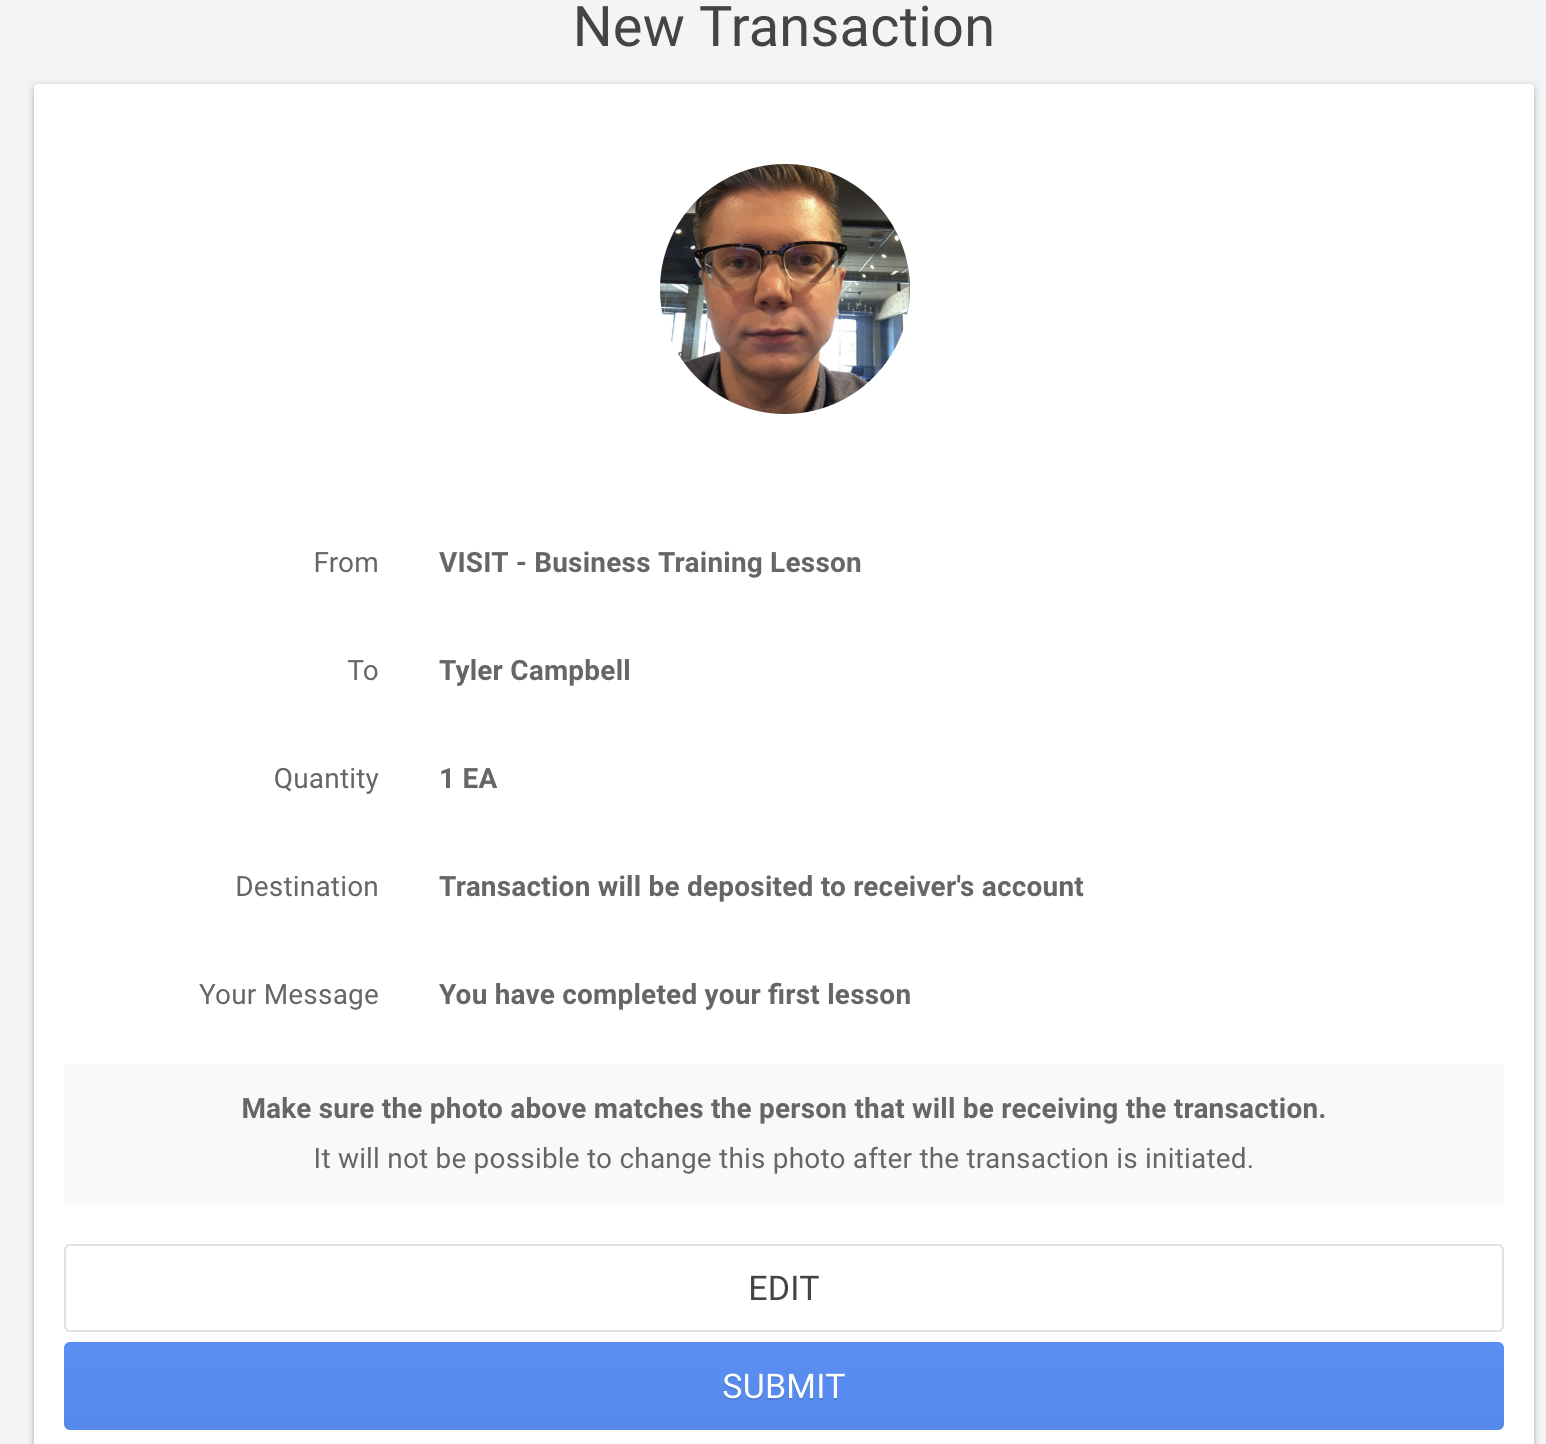 Finalized asset transfer transaction